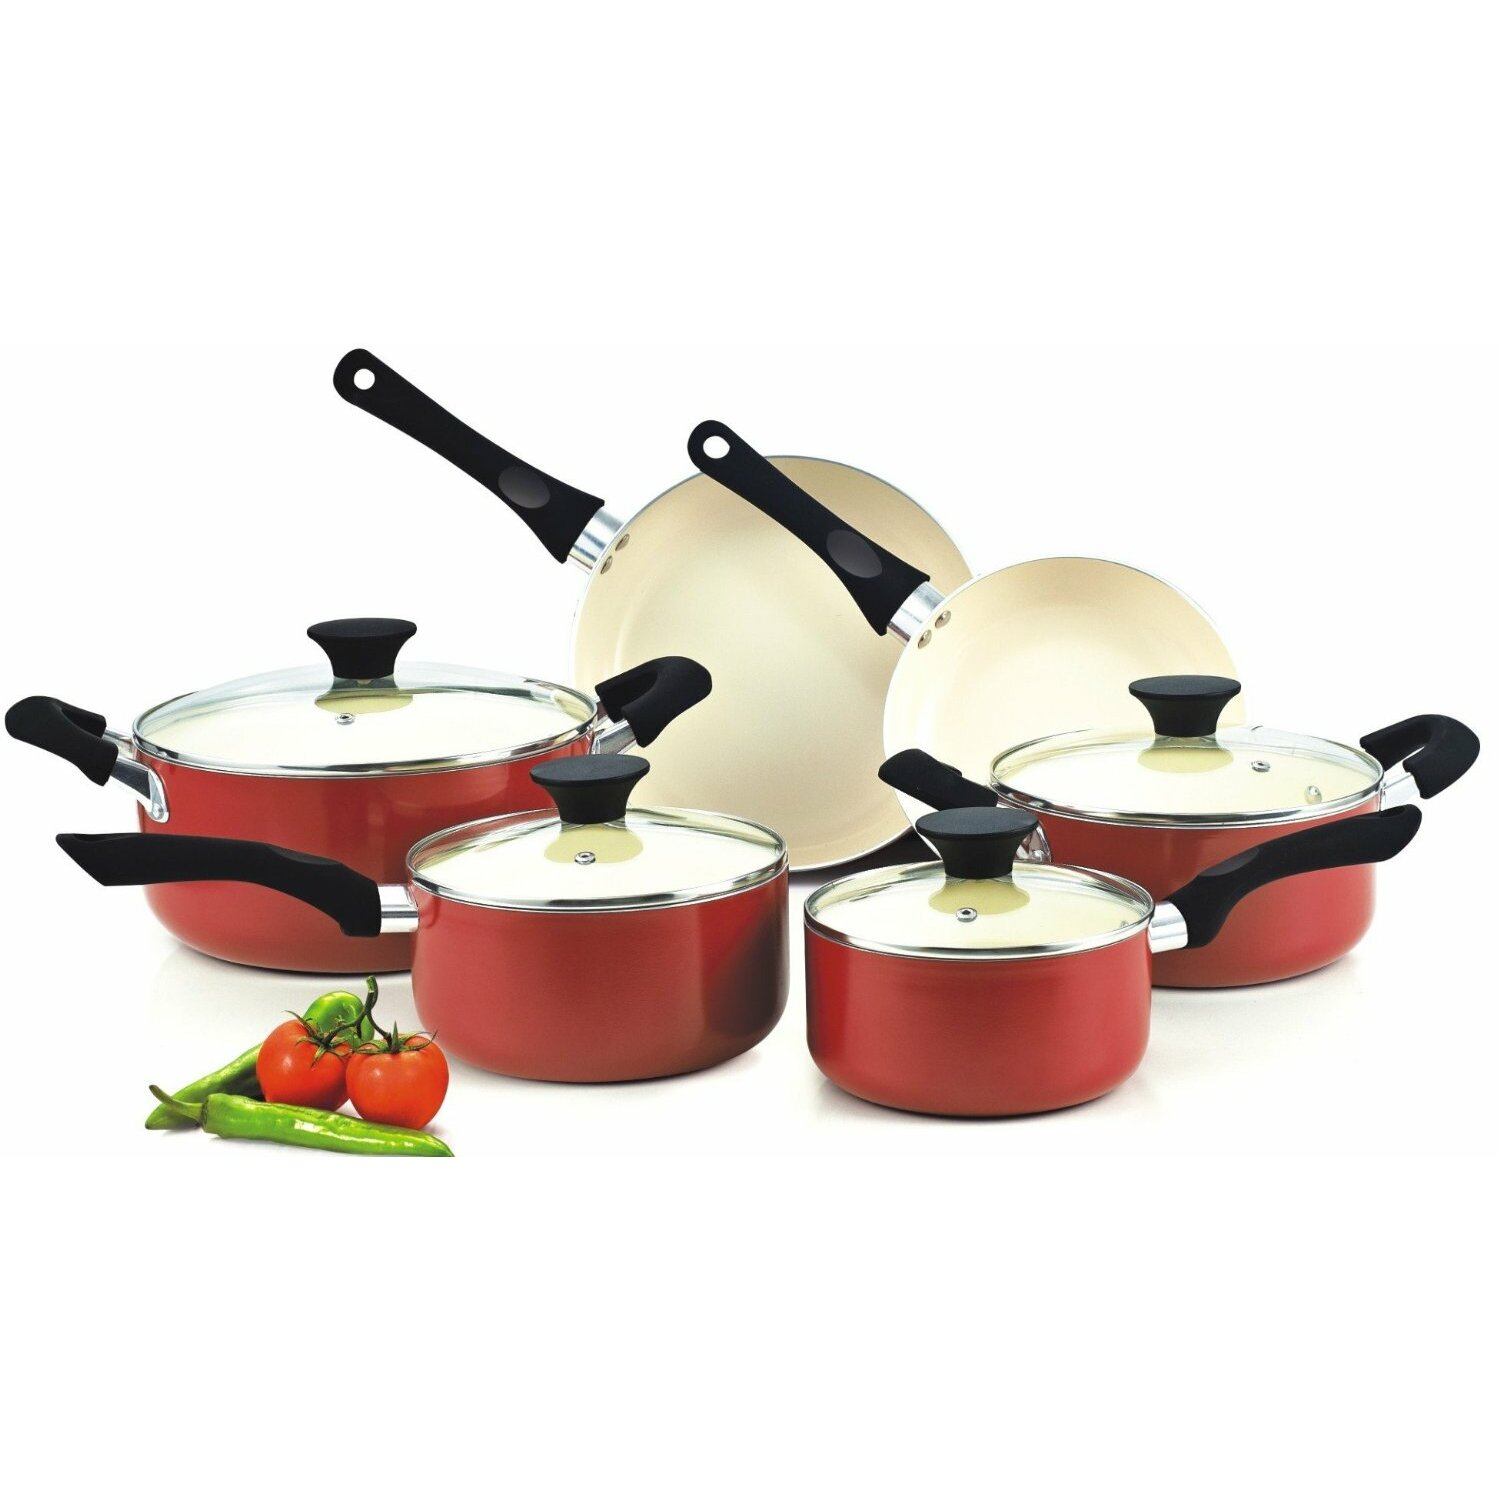 Cook n home 10 piece non stick cookware set reviews for Home piece